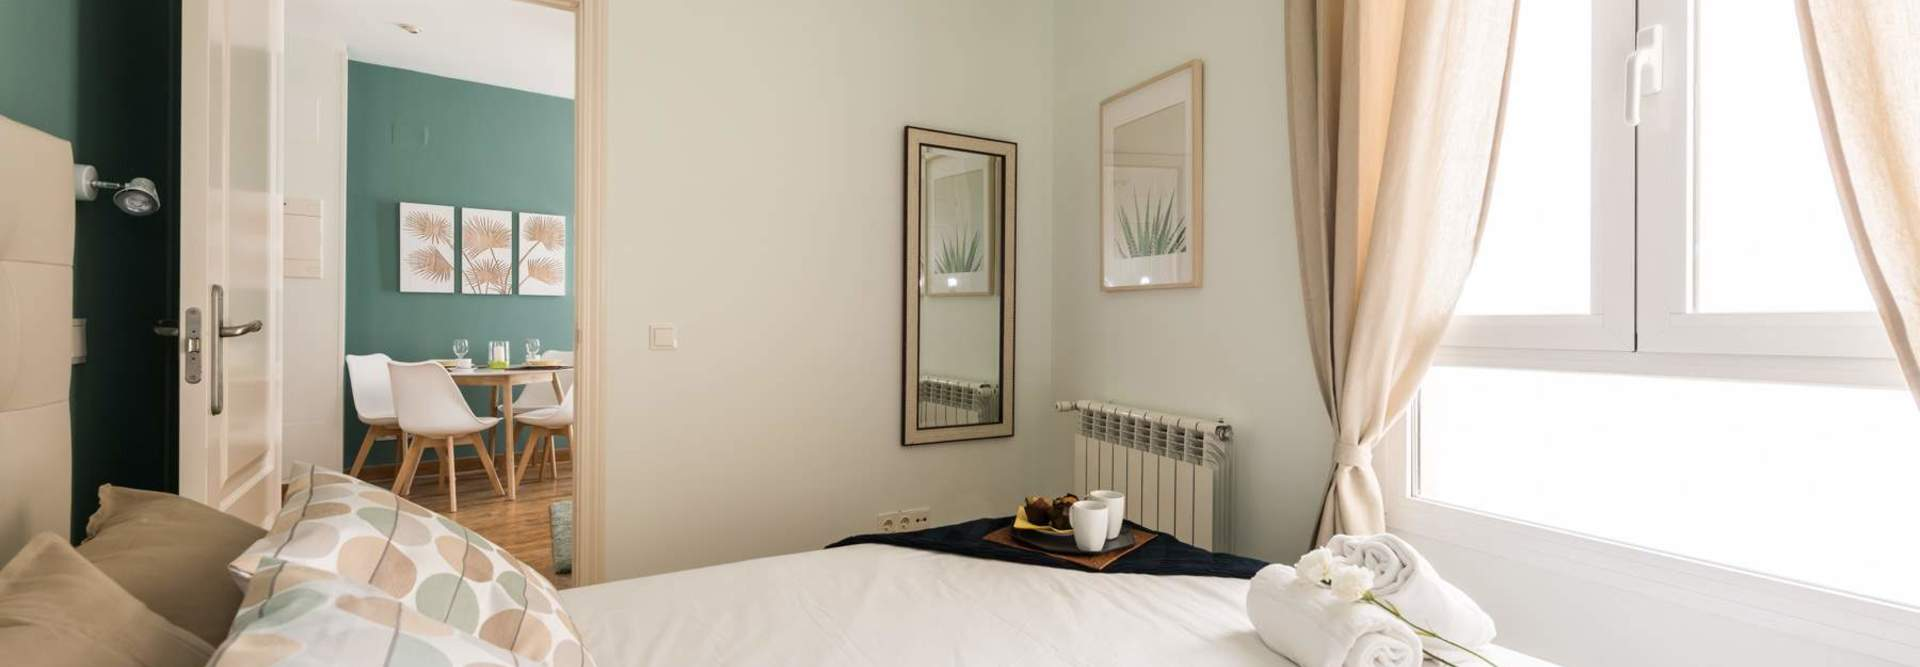 Home alquiler apartamento madrid centro por d as  19